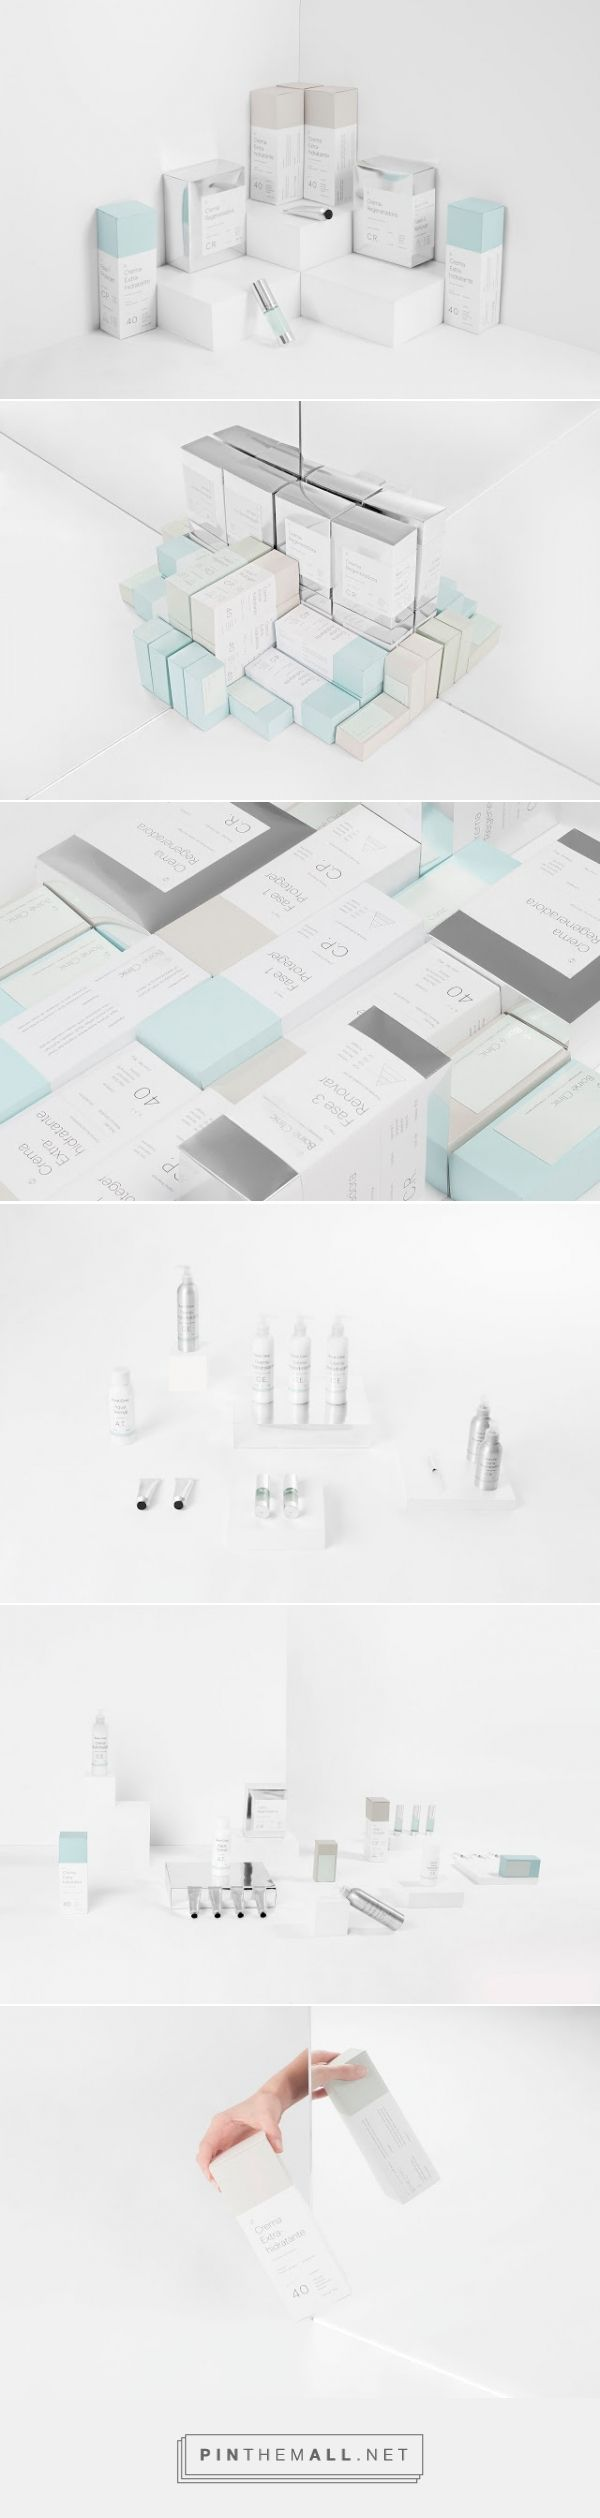 Boine Clinic beauty packaging designed by Sabbath​ - http://www.packagingoftheworld.com/2015/07/boine-clinic.html